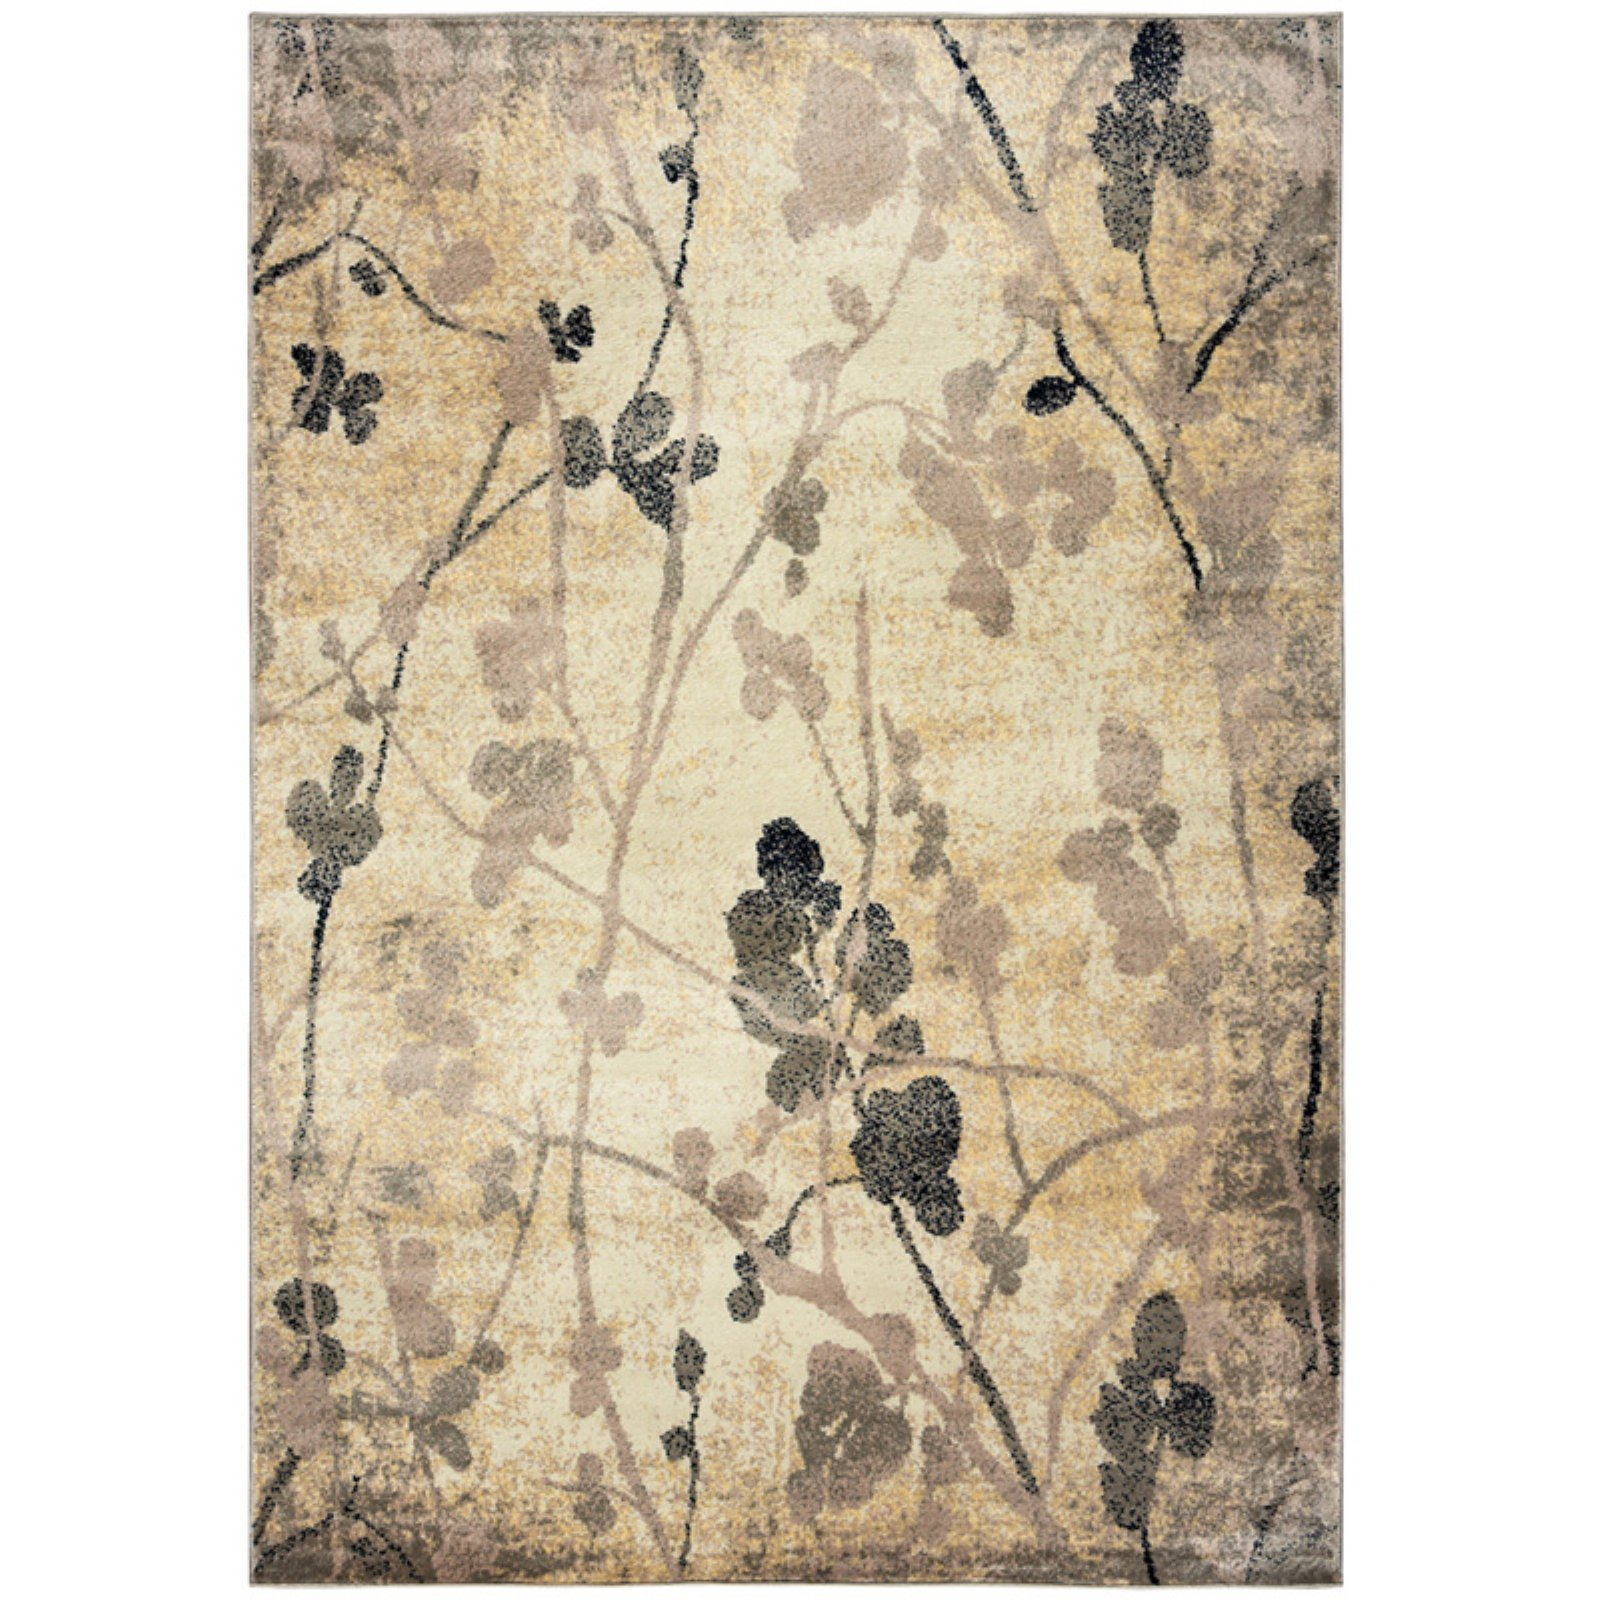 Rizzy Home Bayside BS4007 Rug - (9 Foot 2 Inch x 12 Foot 6 Inch)